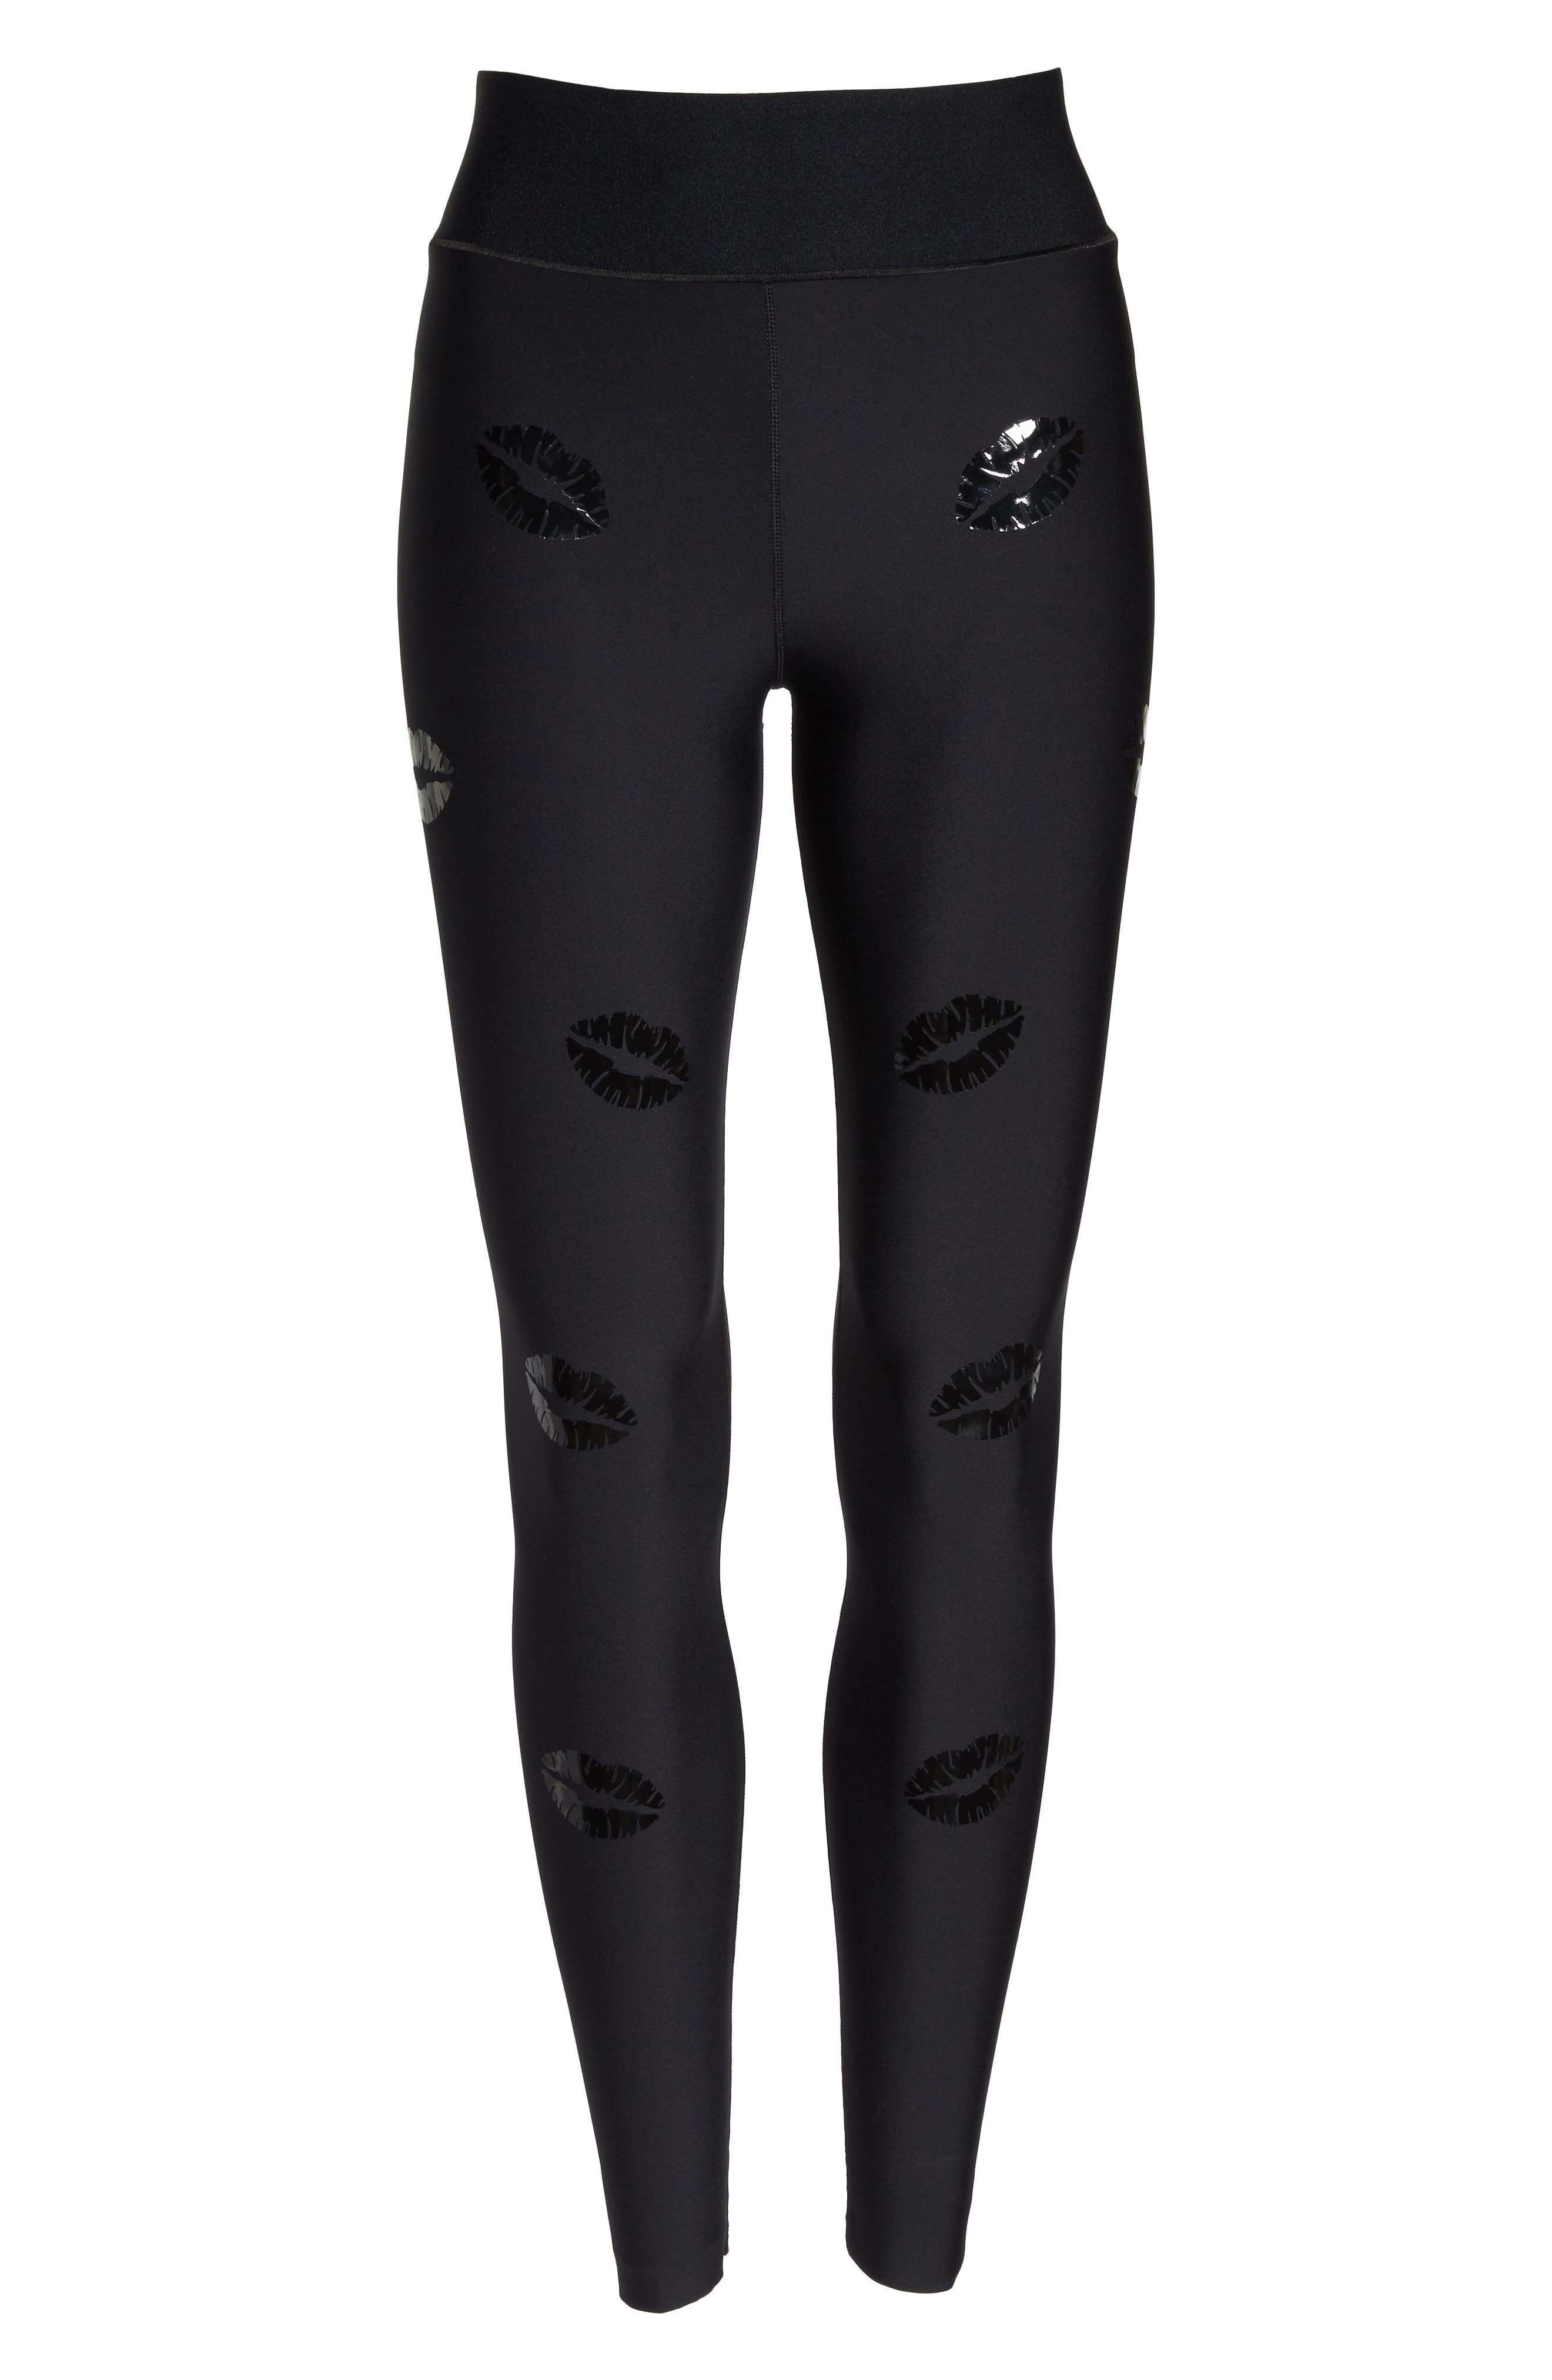 Make Out Lux High Waist Leggings,                             Alternate thumbnail 7, color,                             002